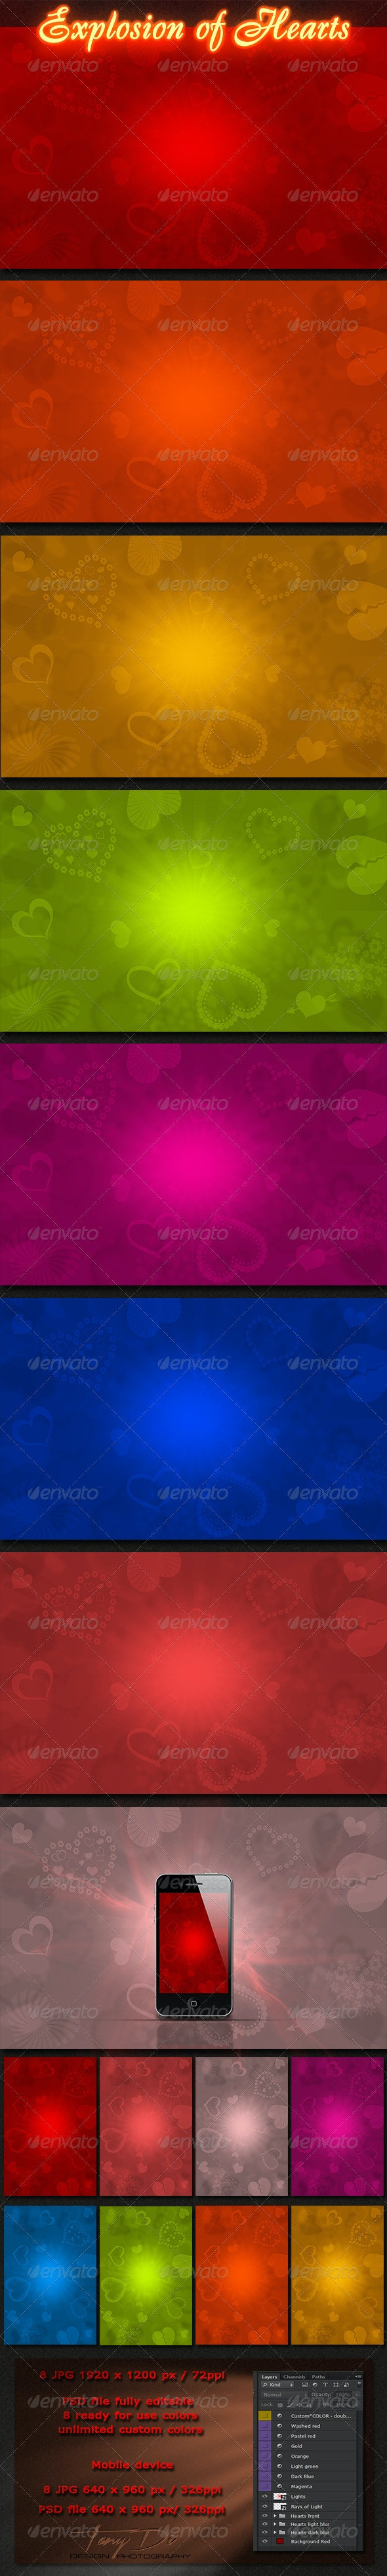 Explosion of Hearts - Miscellaneous Backgrounds